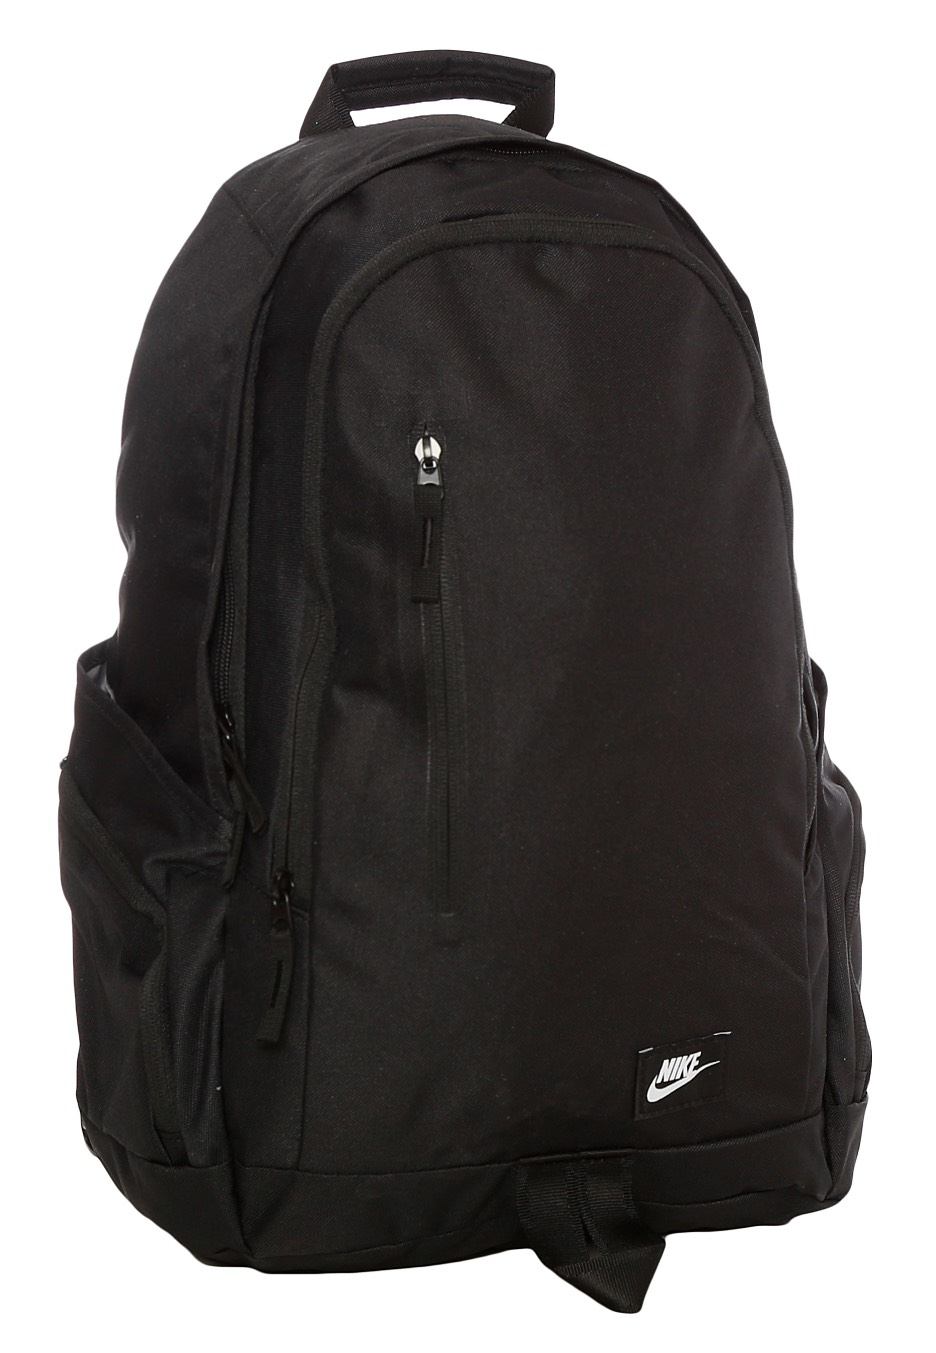 Nike All Access Fullfare BlackBlackWhite Rucksack